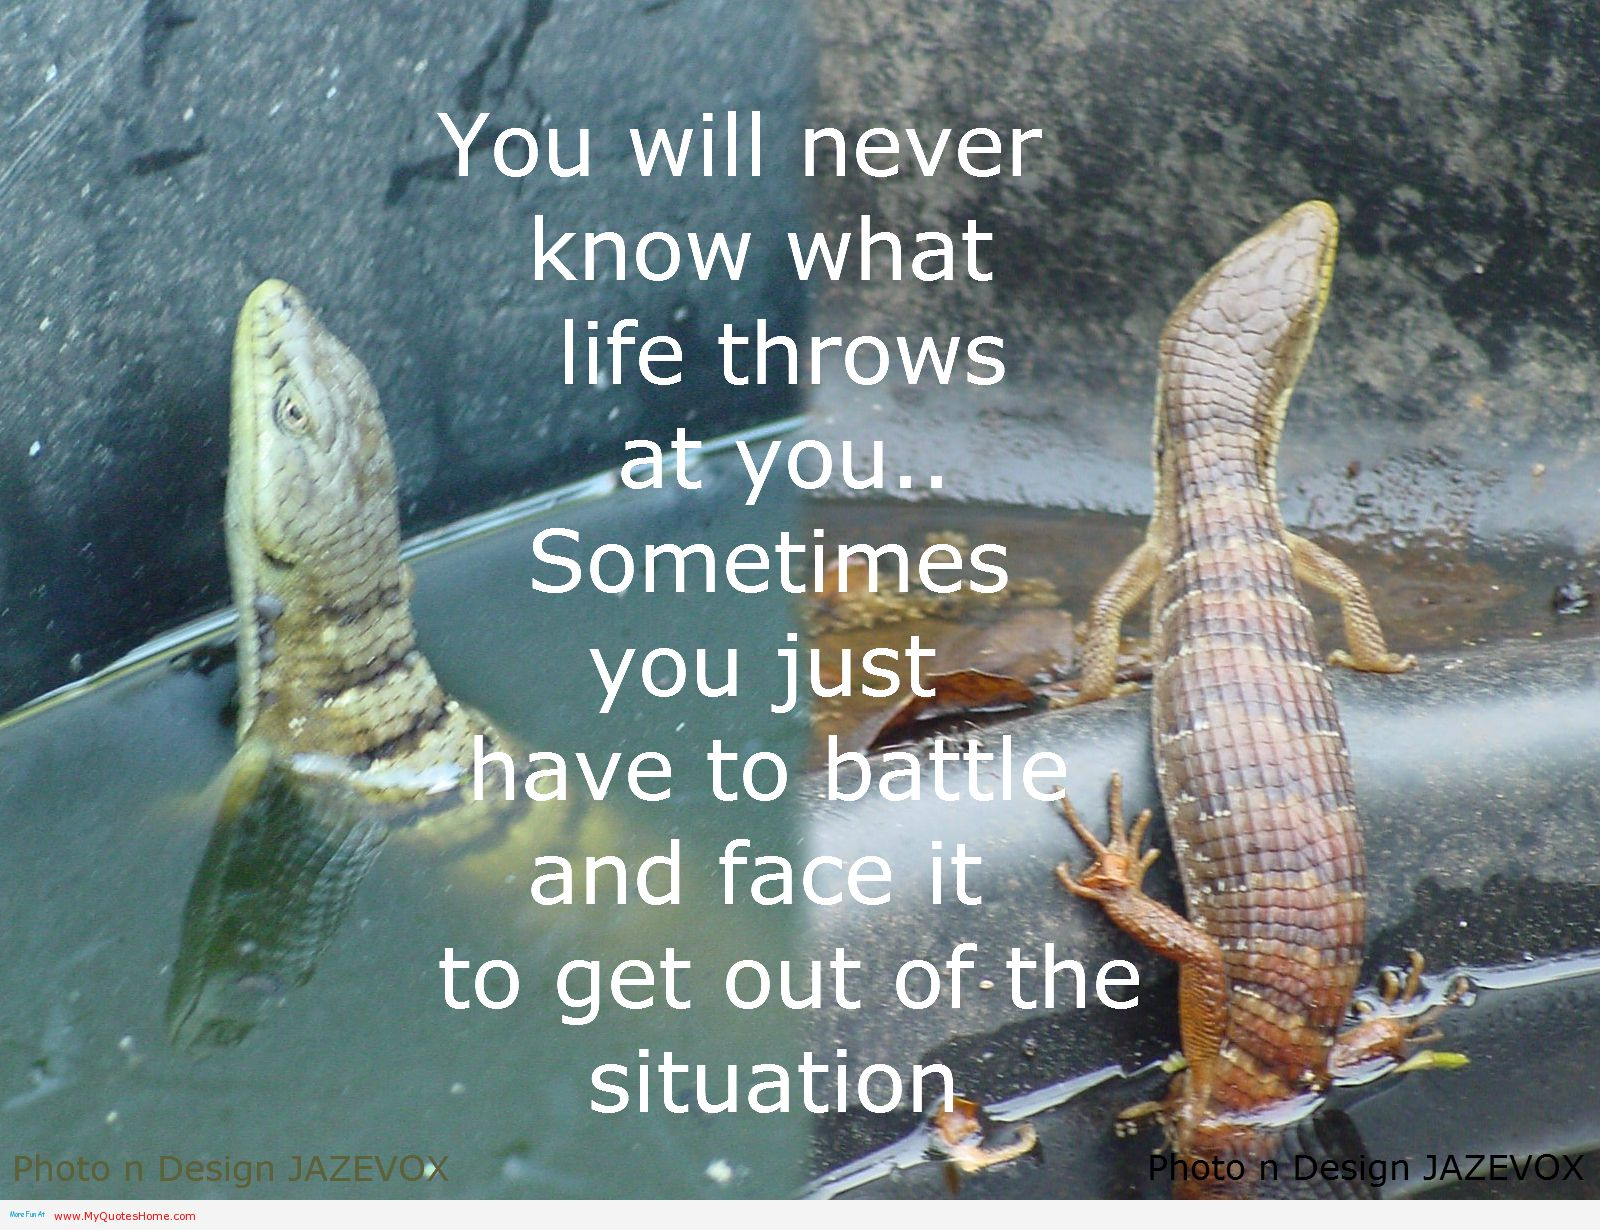 You Will Never Know What Life Throws At You. Sometimes You Just Have To Battle And Face It To Get Out Of The Situation